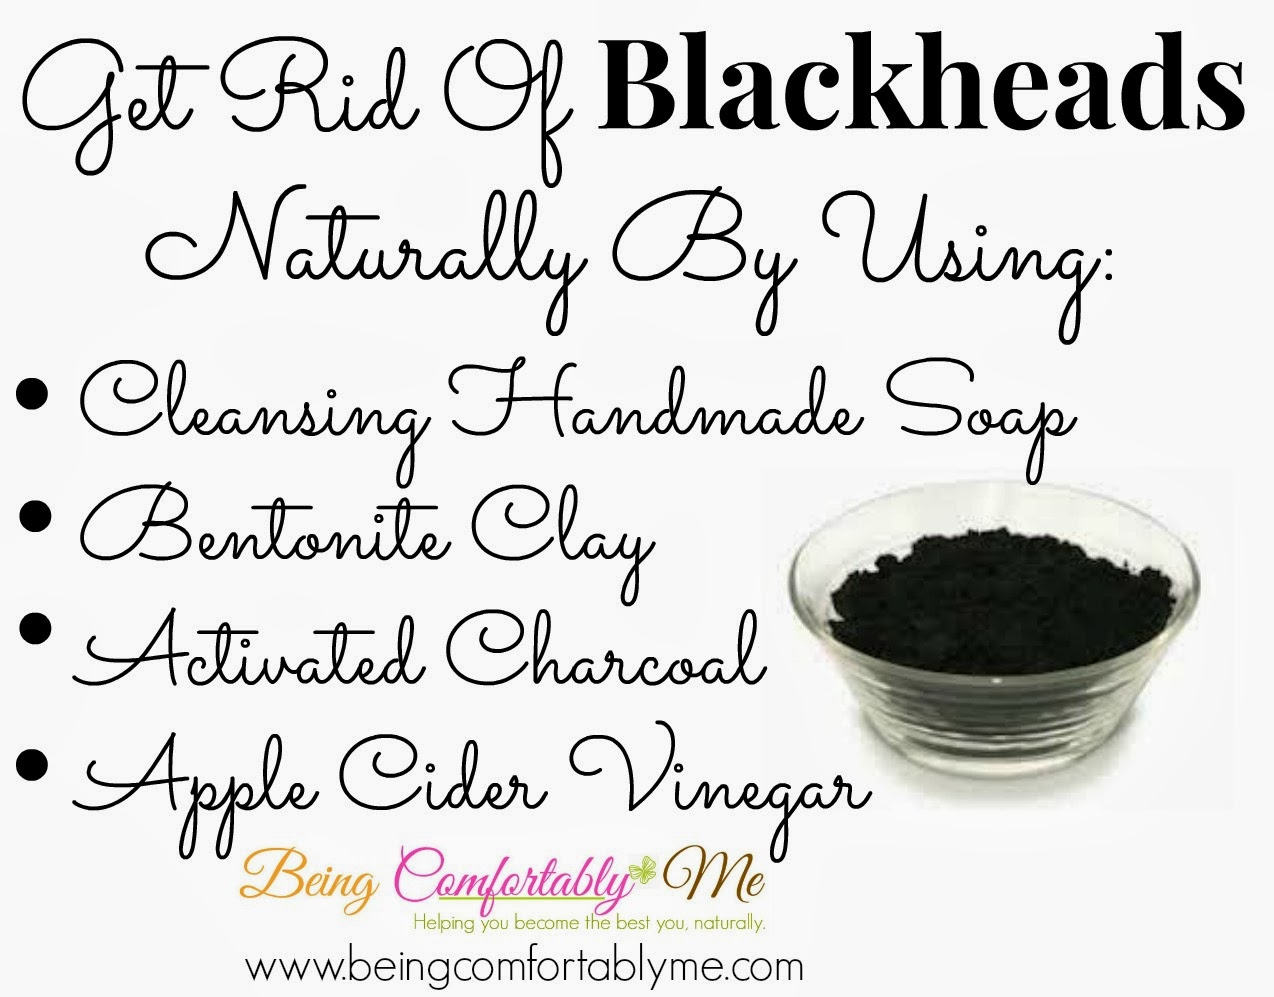 Being Comfortably Me: How To Get Rid Of Blackheads Naturally